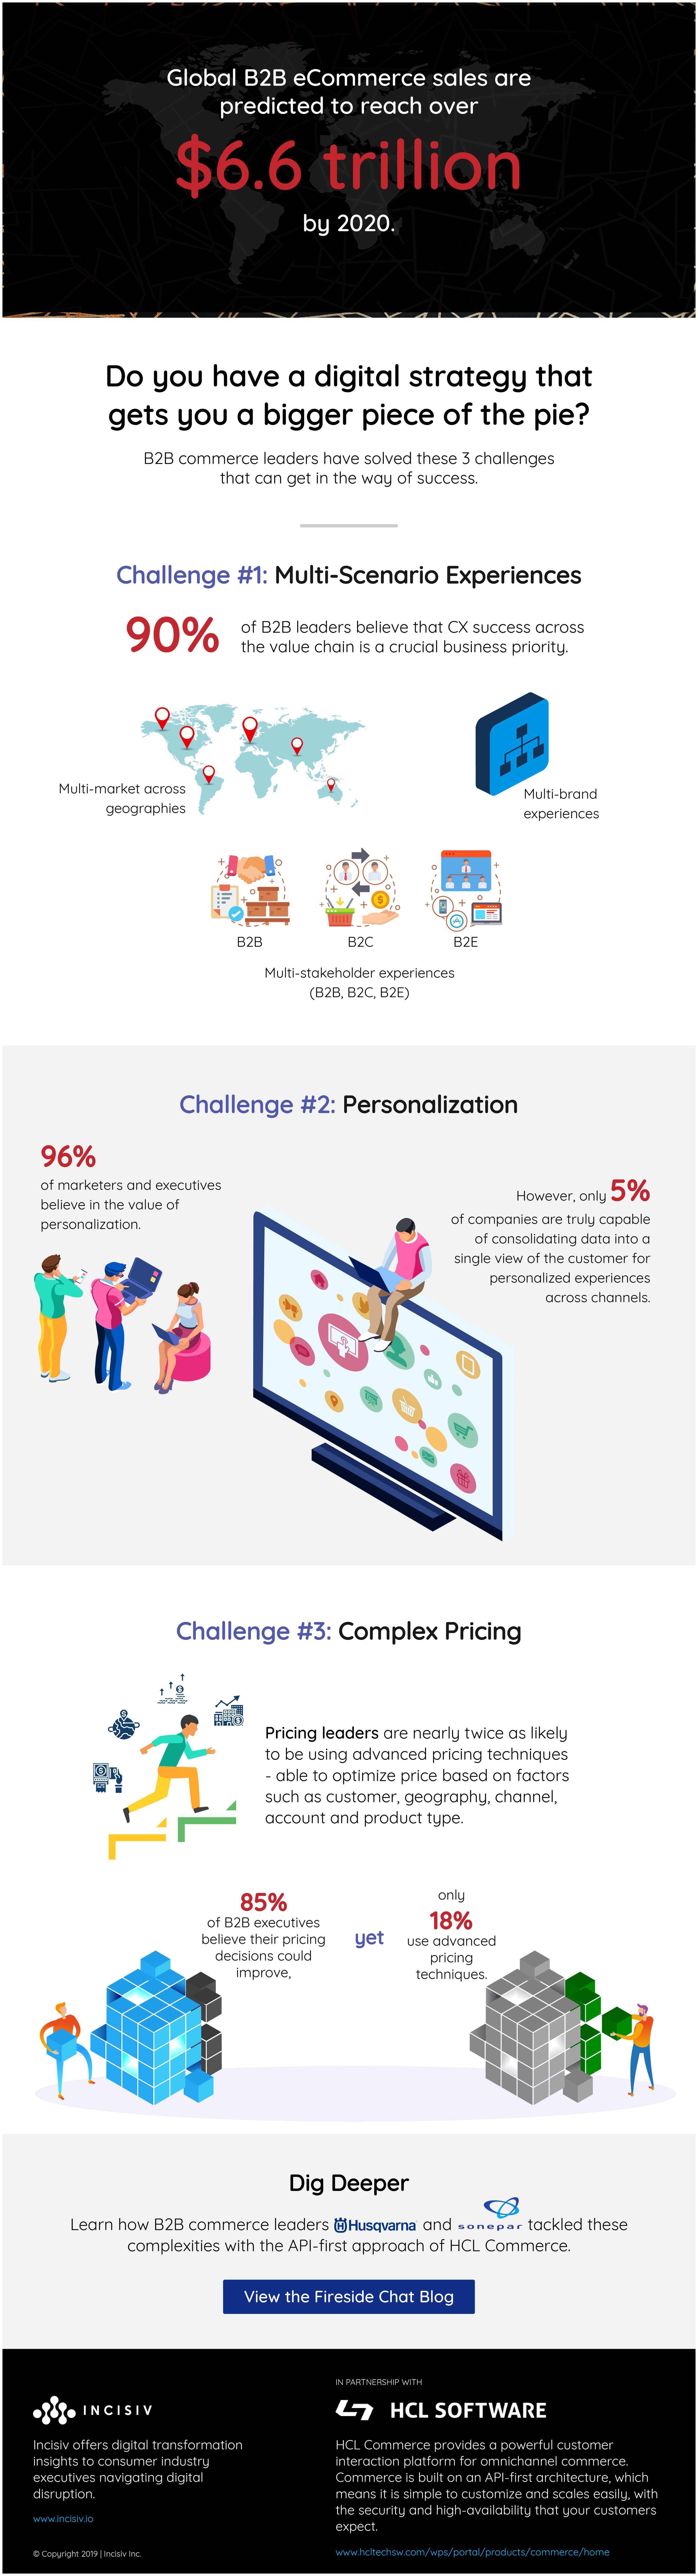 Top Challenges to Overcome for B2B Success, Infographic, Incisiv